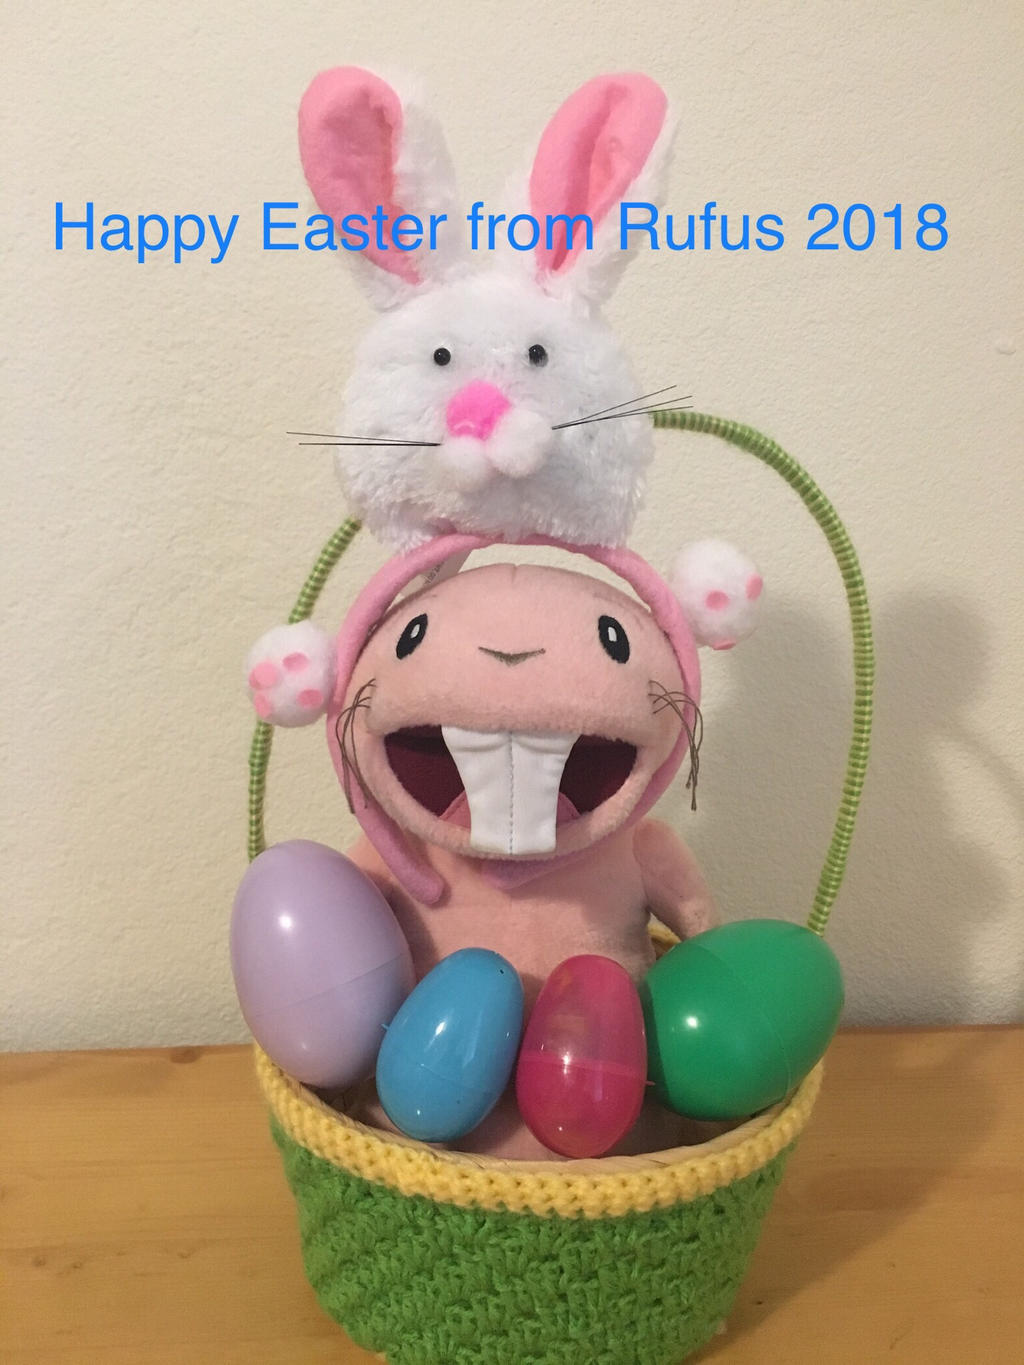 Happy Easter from Rufus of Kim possible 2018 by montrain101